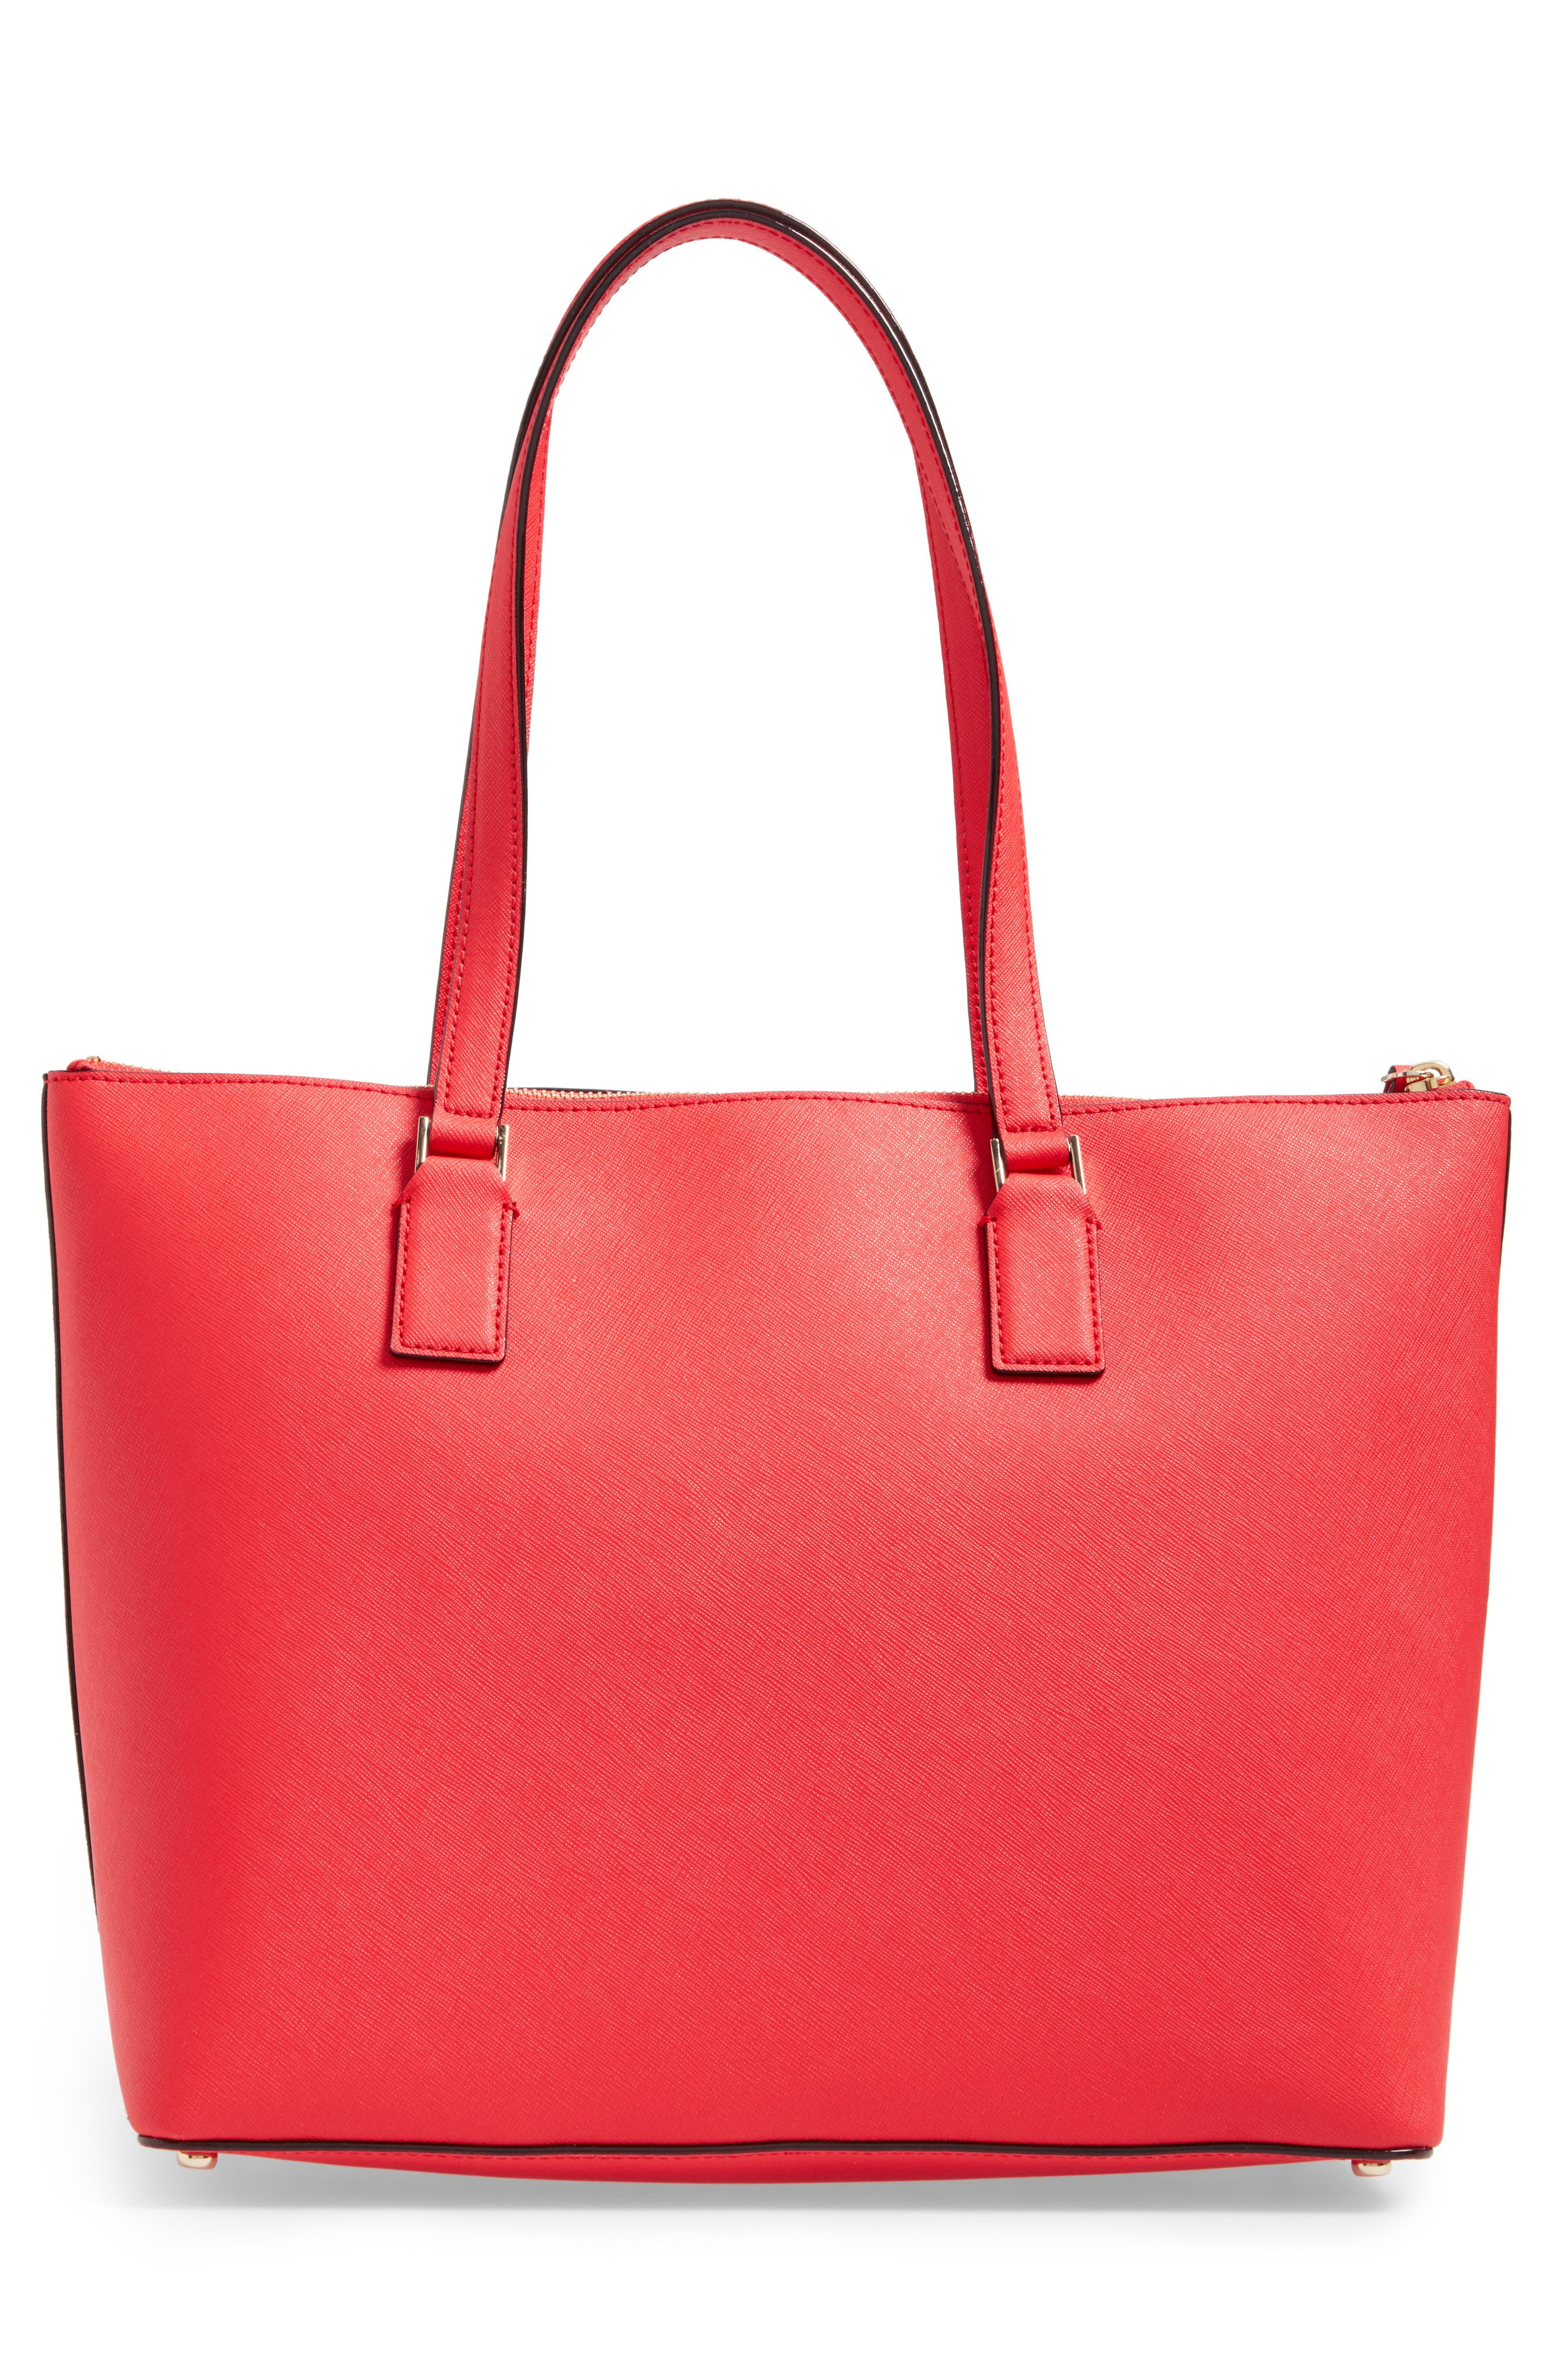 Alternate Image 3  - kate spade new york 'cameron street - lucie' tote